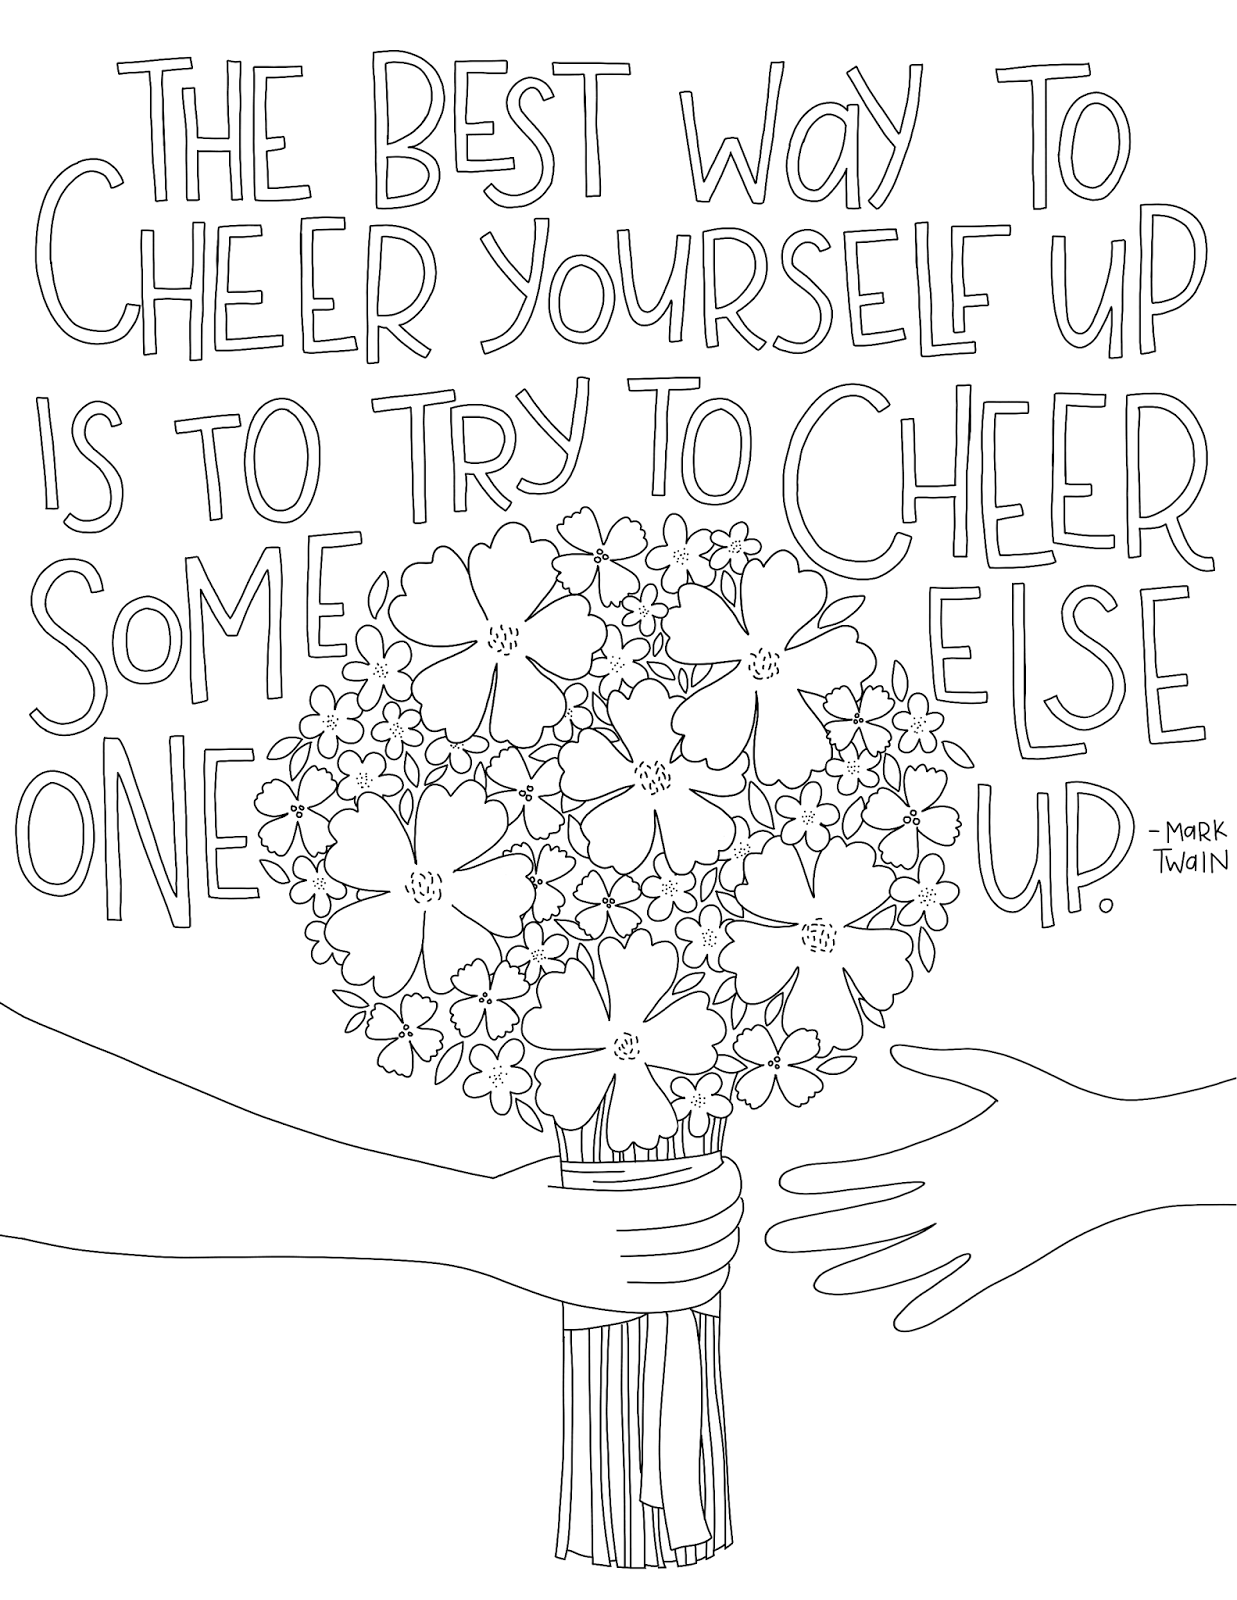 Just What I Squeeze In Cheer Yourself Up Free Happy Quote Coloring Page Quote Coloring Pages Coloring Pages Love Coloring Pages [ 1600 x 1237 Pixel ]